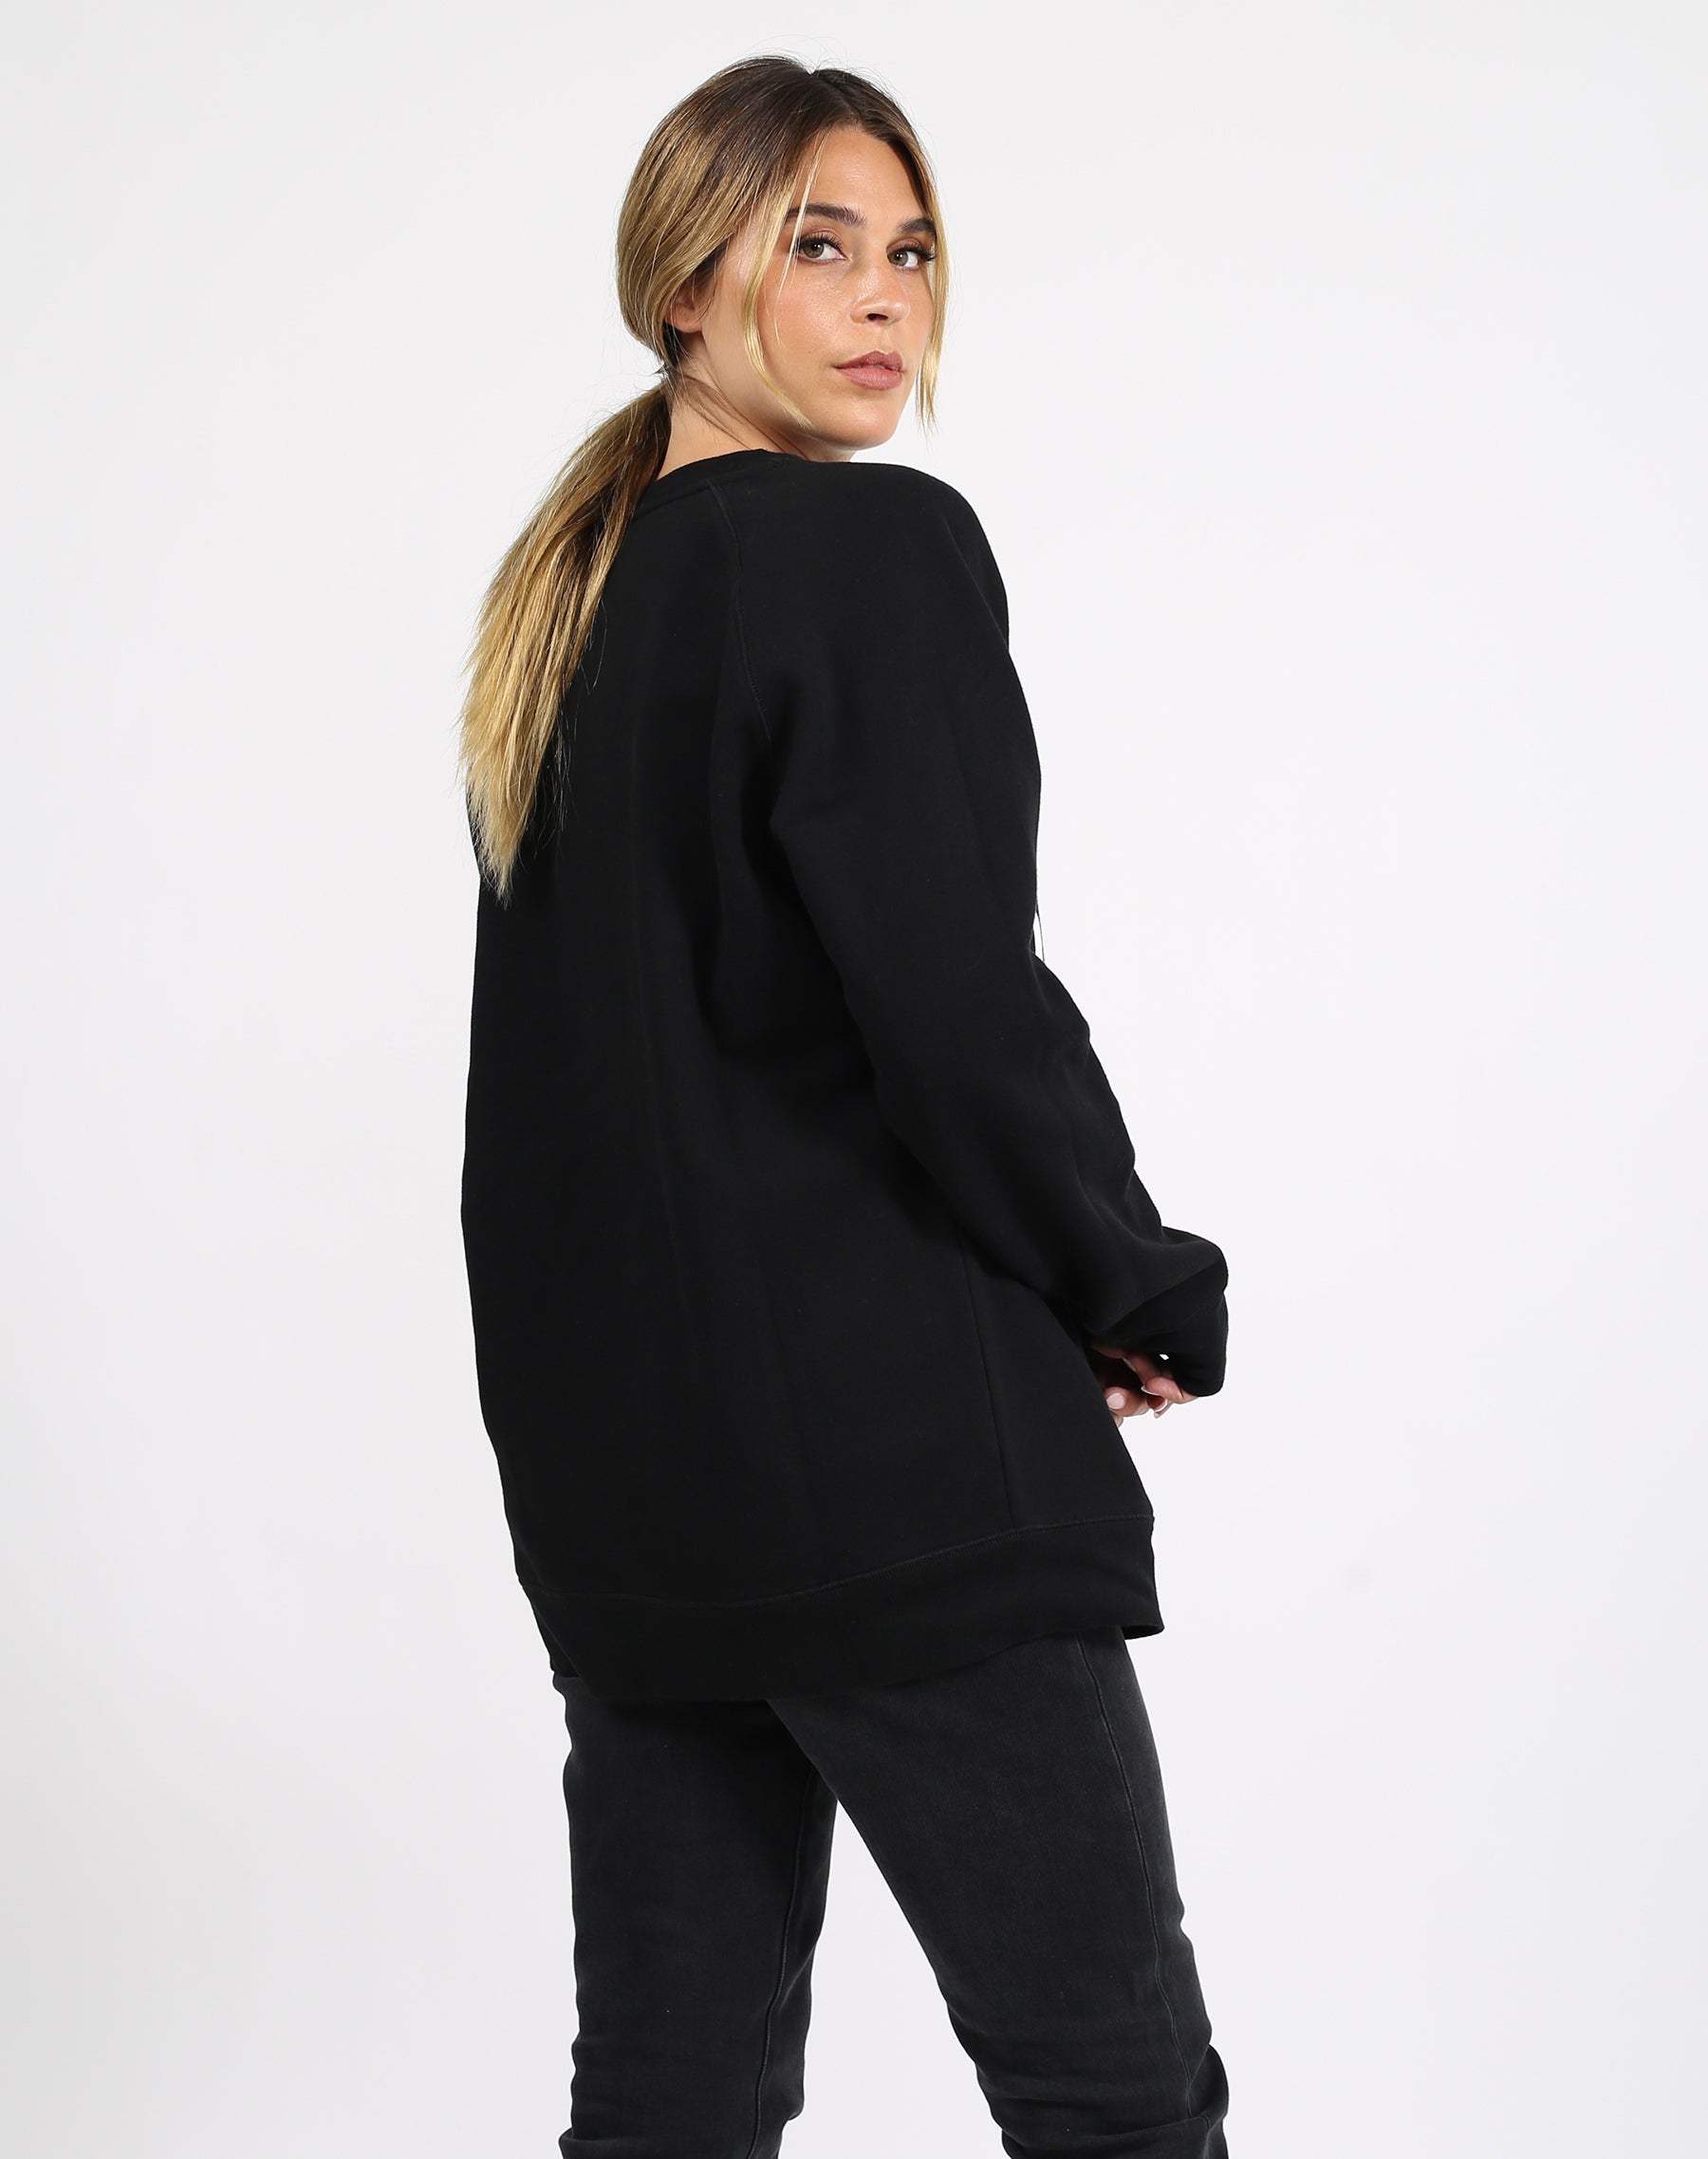 This is a photo of the back of a model wearing the Lounge Blonde Big Sister Crew Neck Sweatshirt in Black by Brunette the Label.'